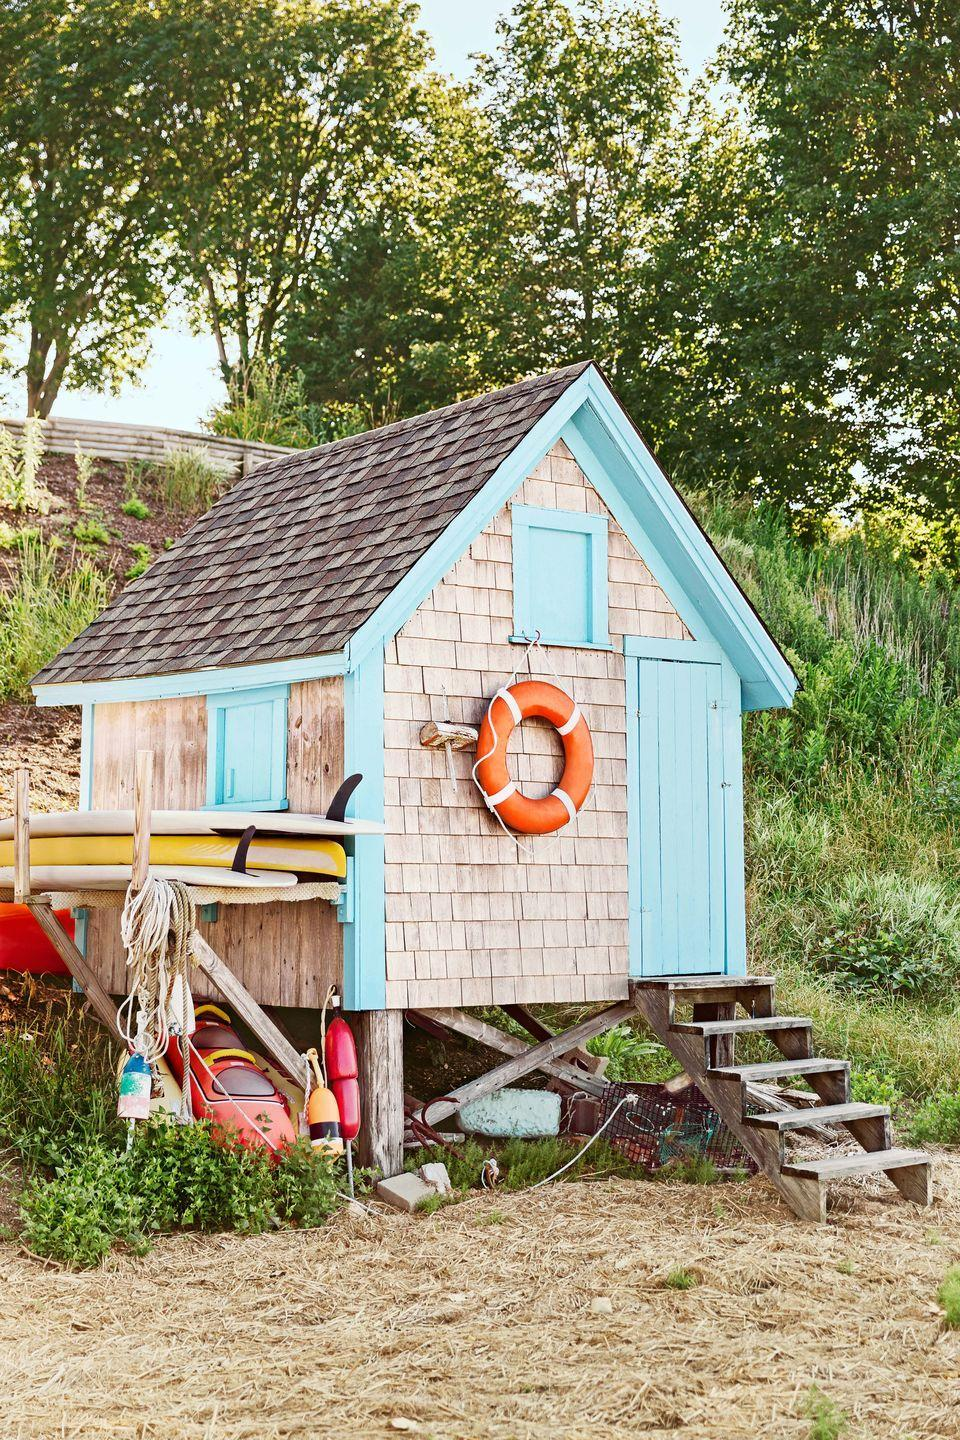 """<p>This New England shack makes us want to kick off our sandals and head straight for the shore. A colorful exterior is contrasted beautifully by faded Cape Cod shingles.</p><p><a class=""""link rapid-noclick-resp"""" href=""""https://www.amazon.com/Tiny-House-Live-Small-Dream/dp/0525576614?tag=syn-yahoo-20&ascsubtag=%5Bartid%7C10072.g.35047961%5Bsrc%7Cyahoo-us"""" rel=""""nofollow noopener"""" target=""""_blank"""" data-ylk=""""slk:SHOP TINY HOUSE COFFEE TABLE BOOKS"""">SHOP TINY HOUSE COFFEE TABLE BOOKS</a></p>"""